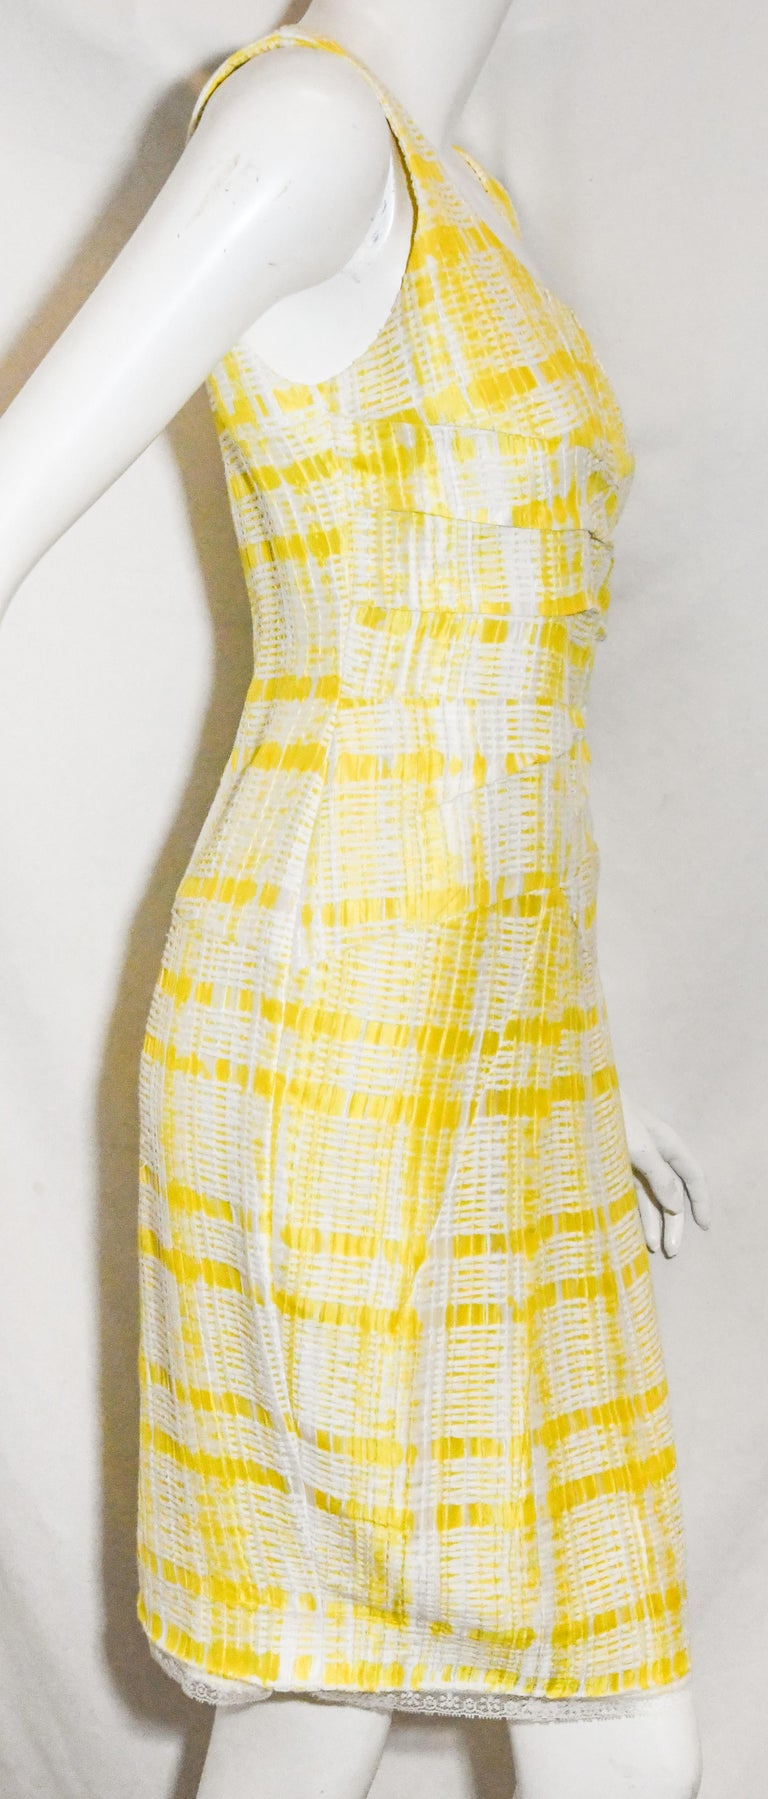 Women's Oscar de la Renta Yellow and White Sleeveless Textured Dress For Sale